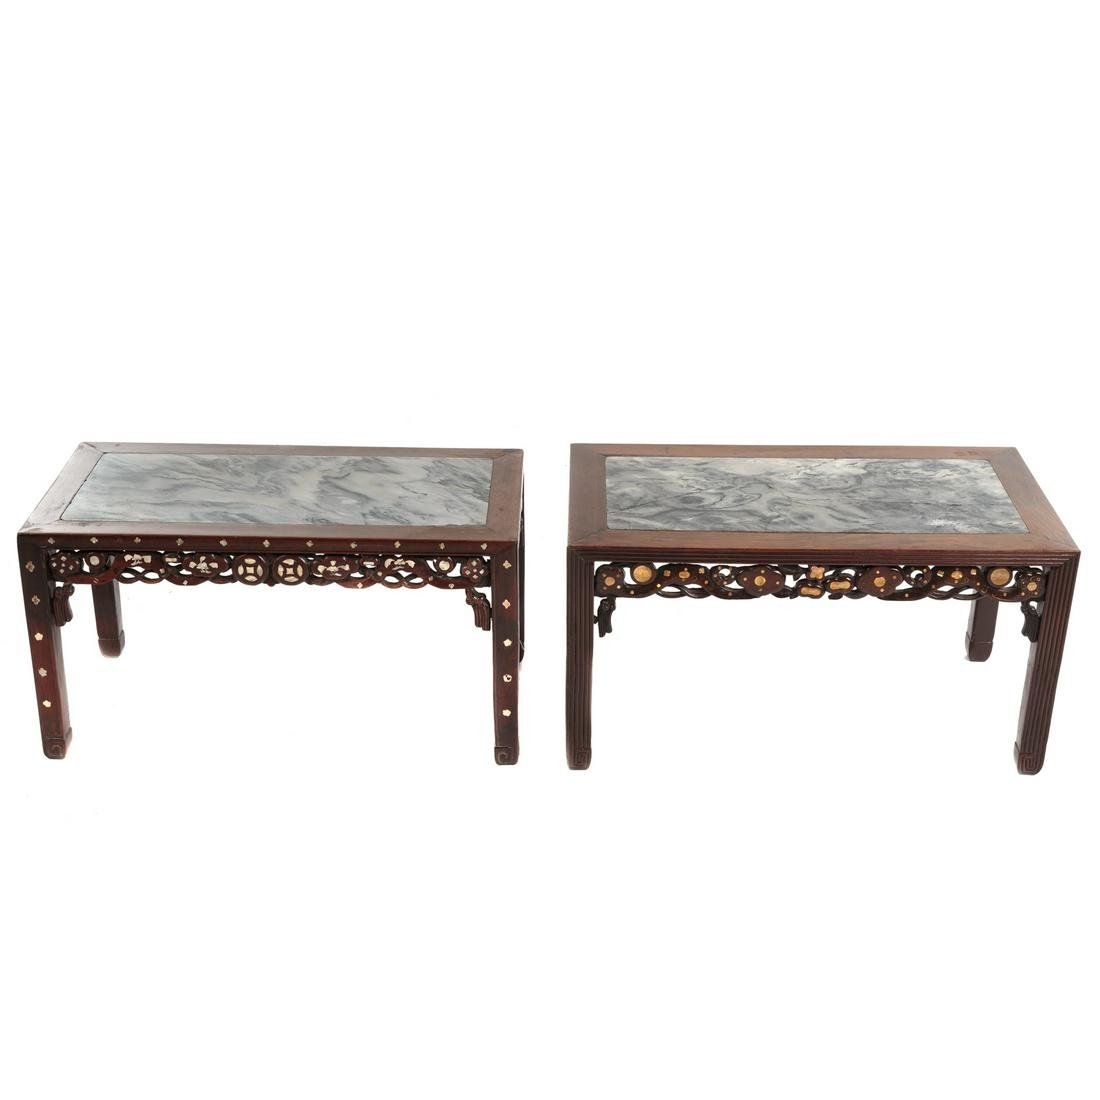 Two Similar Chinese Rosewood Scholars Tables